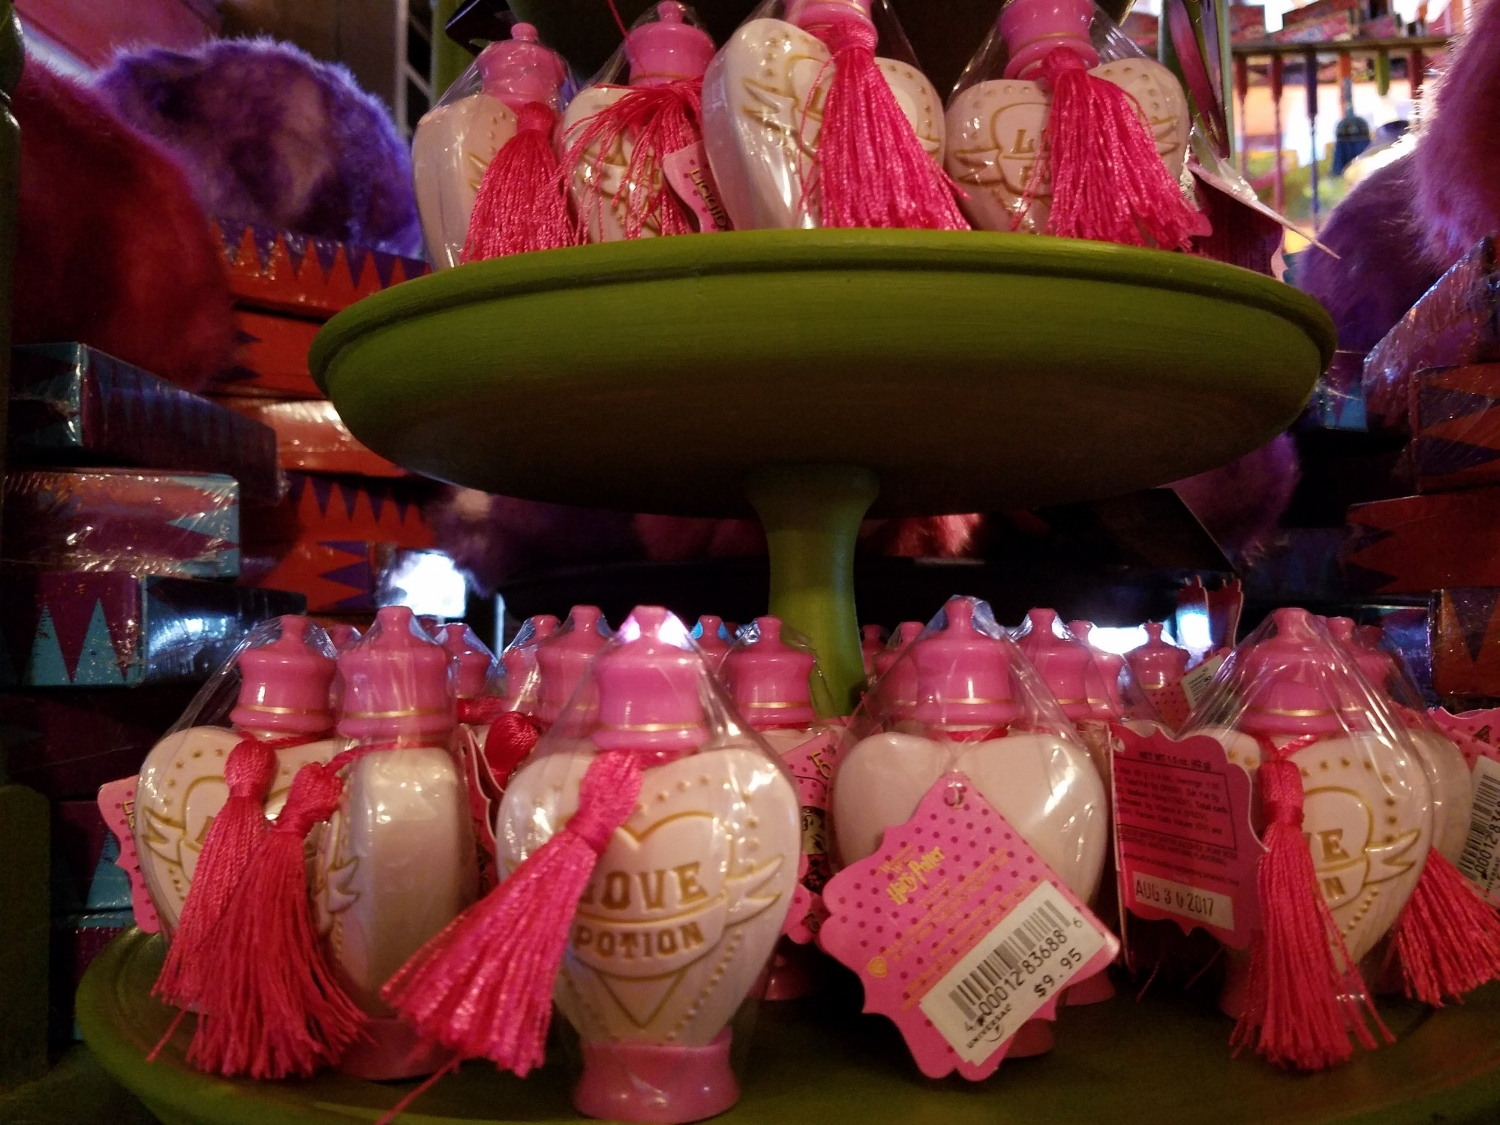 Love Potion for sale at Weasley's Wizard Wheezes.